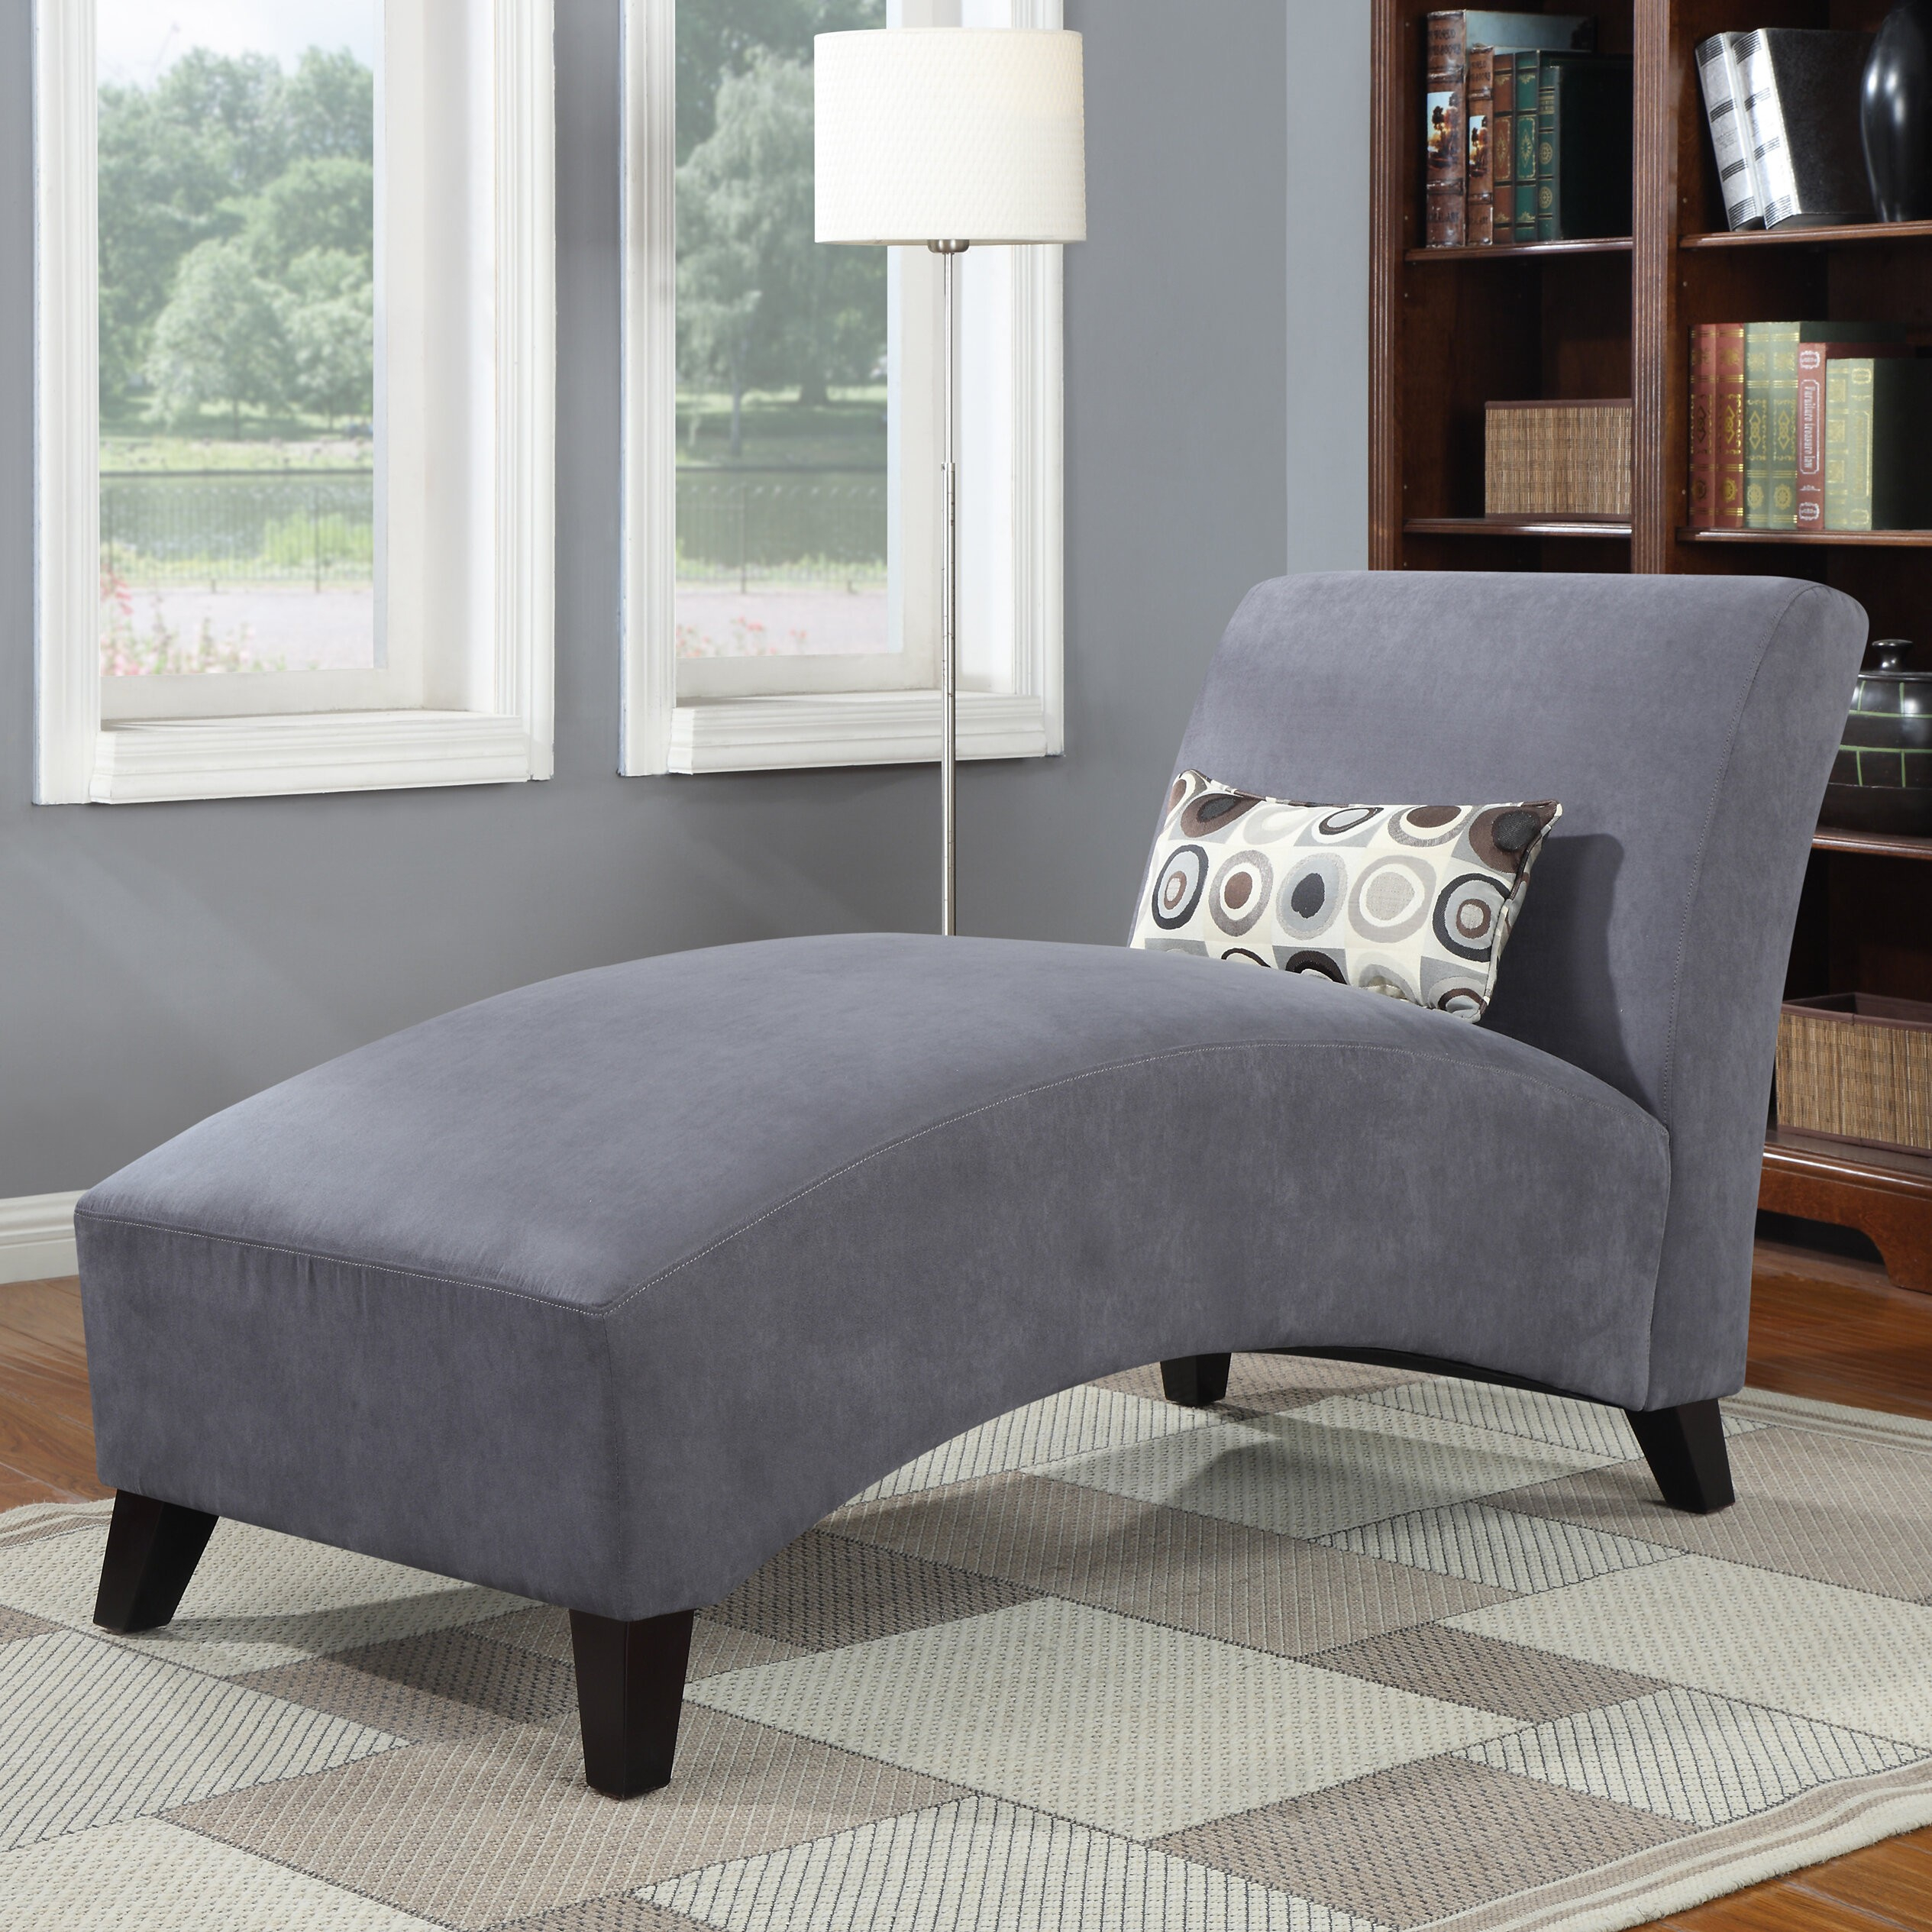 Ordinaire Commotion Chaise Lounge